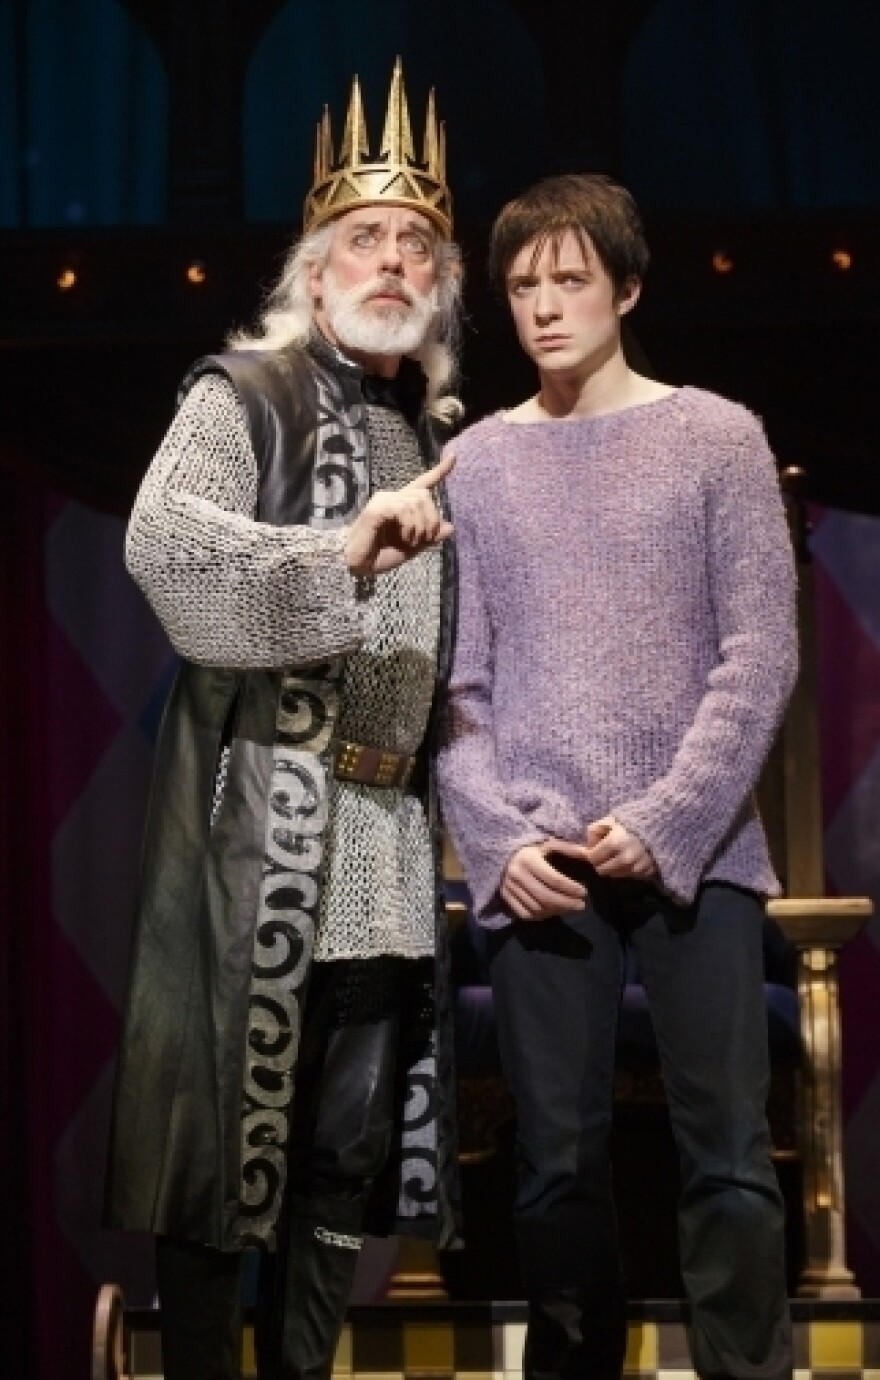 The medieval king Charles (Terrence Mann) is far too busy ruling to spend time with his easily distracted son Pippin (Matthew James Thomas).